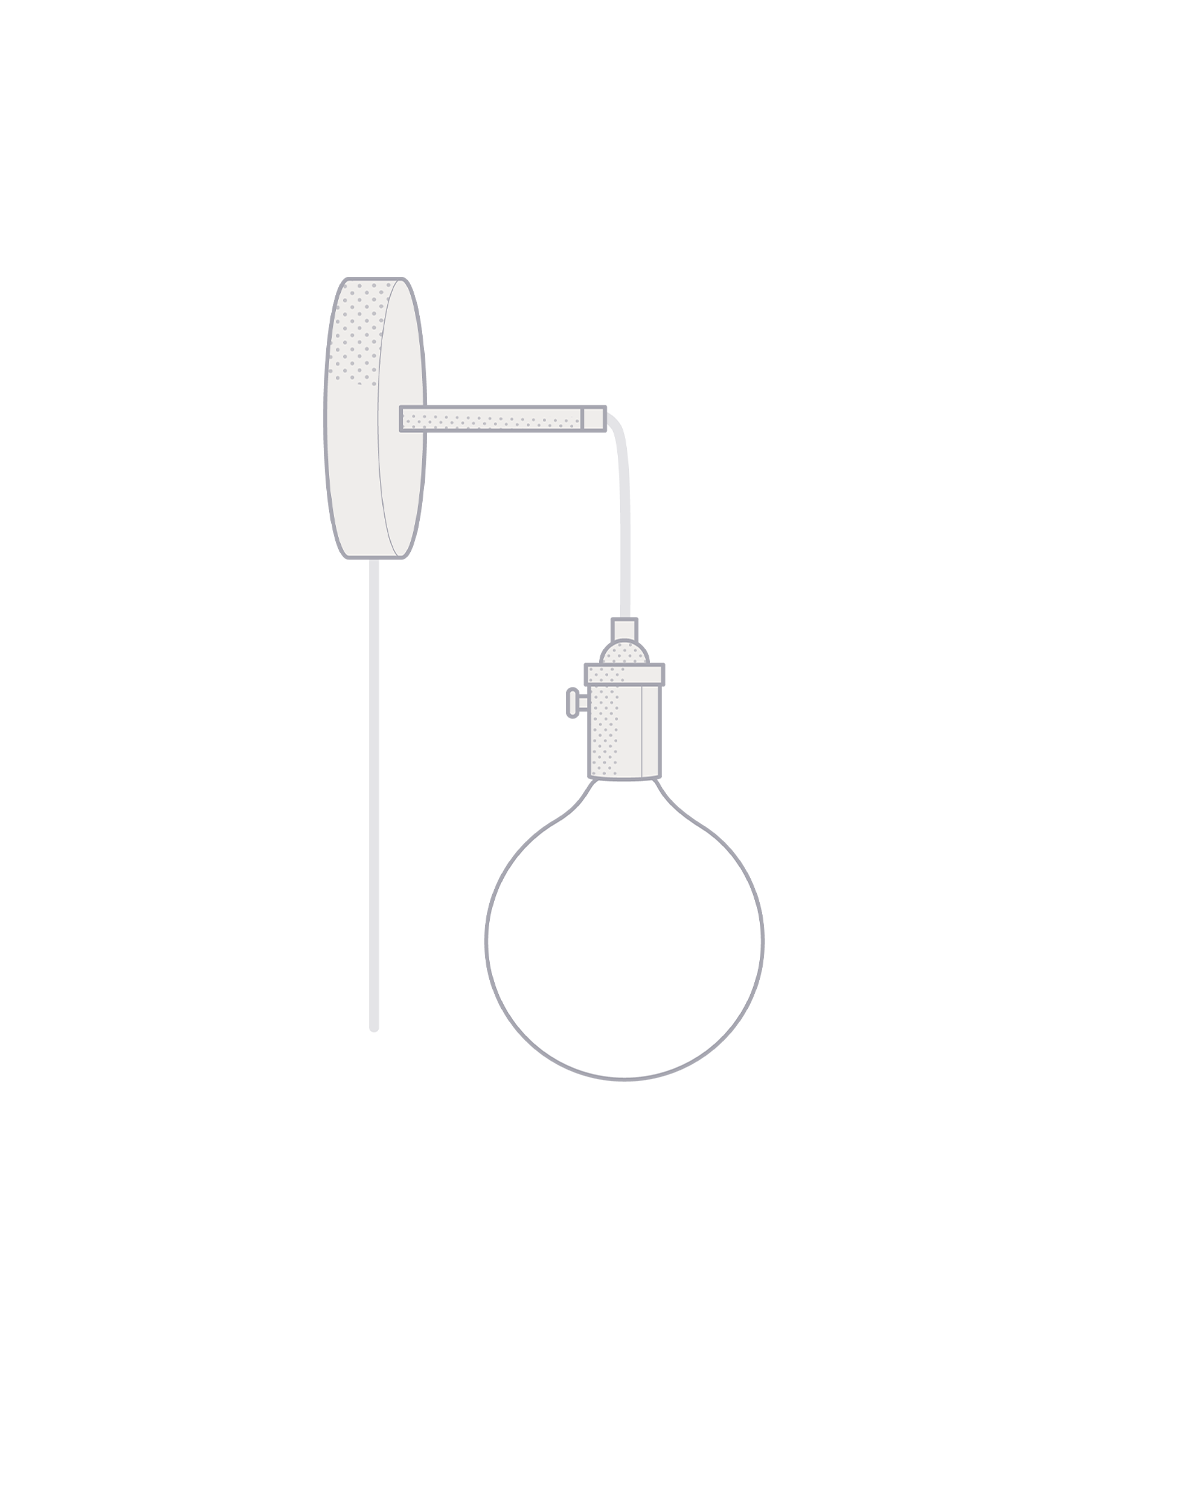 Plug-in Adjustable Wall Sconce: Design Your Own Hangout Lighting